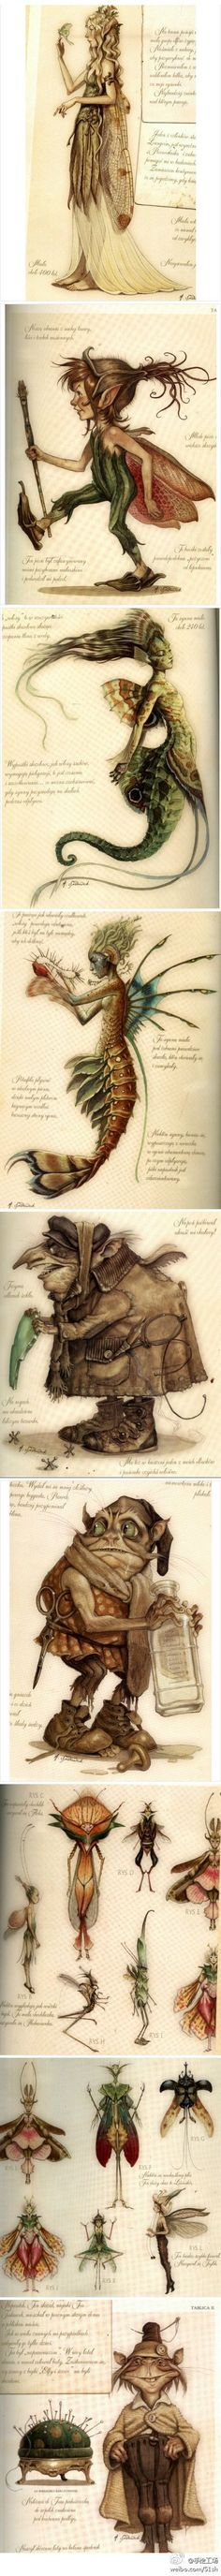 "Goblins & Fairies Explained - art by Tony DiTerlizzi [ ""Goblins & Fairies. They are published by Harry N. Abrams Inc. Gnomes is illustrated by Rien Pouttvliet and written by Wil Huygen. Faeries is described and illustrated by Brian Froud and Alan Lee. b m w..."", ""Goblins & Fairies Explained - art by Tony DiTerlizzi. Stunning show pin of examples. Love it. Great job... CTH"", ""These are from the Spiderwick Chronicles!! I used to love looking through the Field Guide. The illustrations are ..."